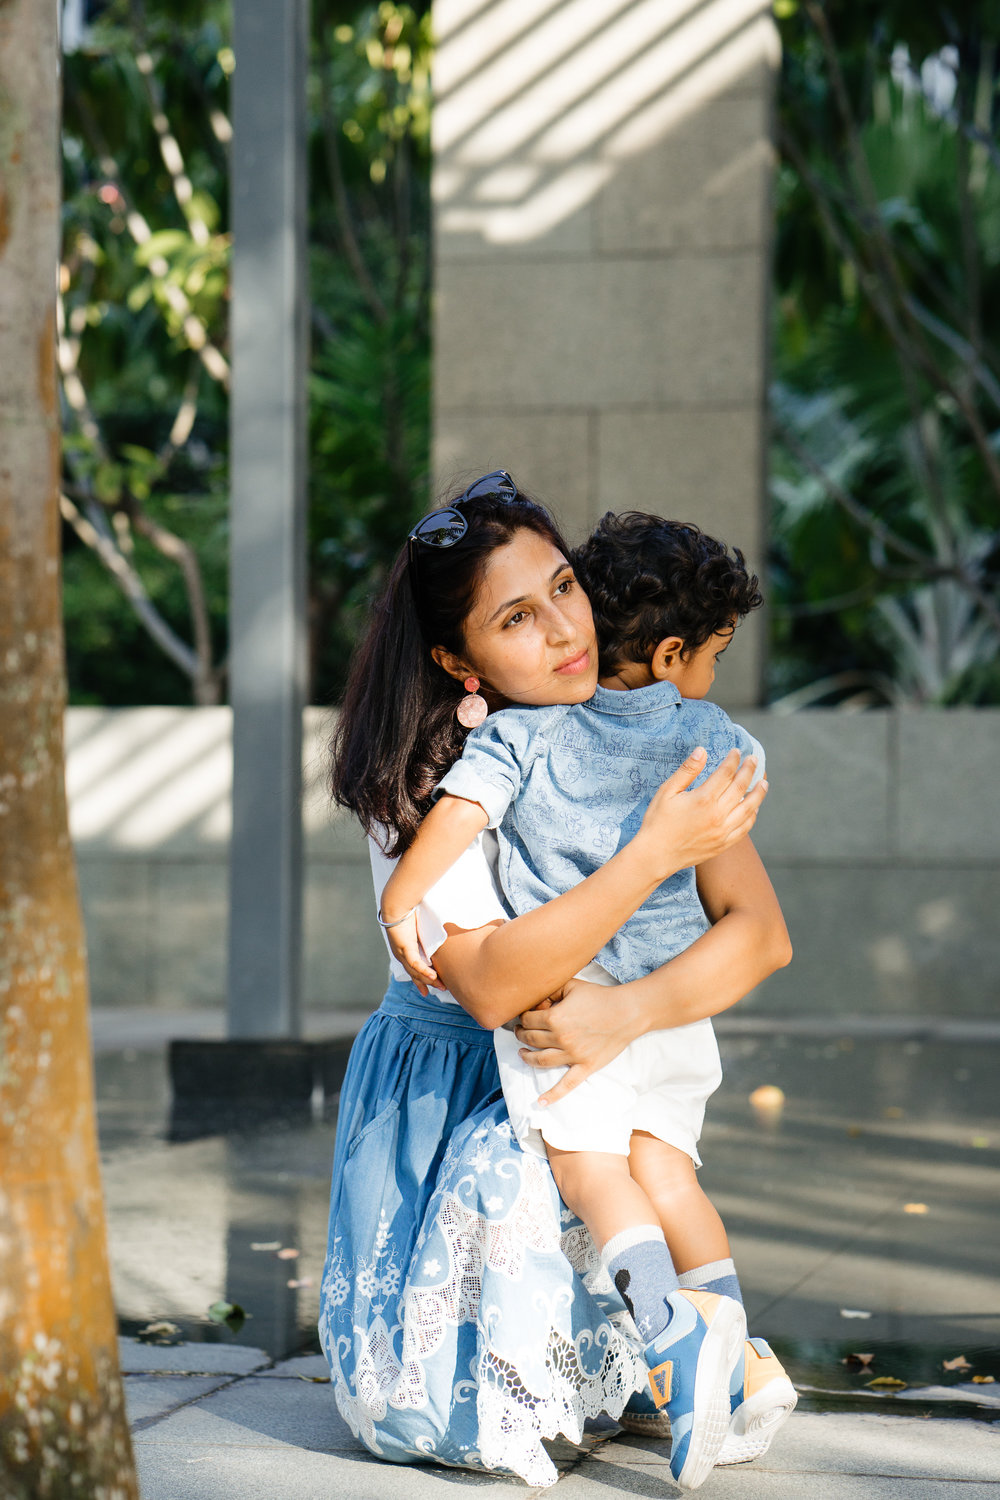 The Best Job In The World - Being A Mother (all that hugs perks!)